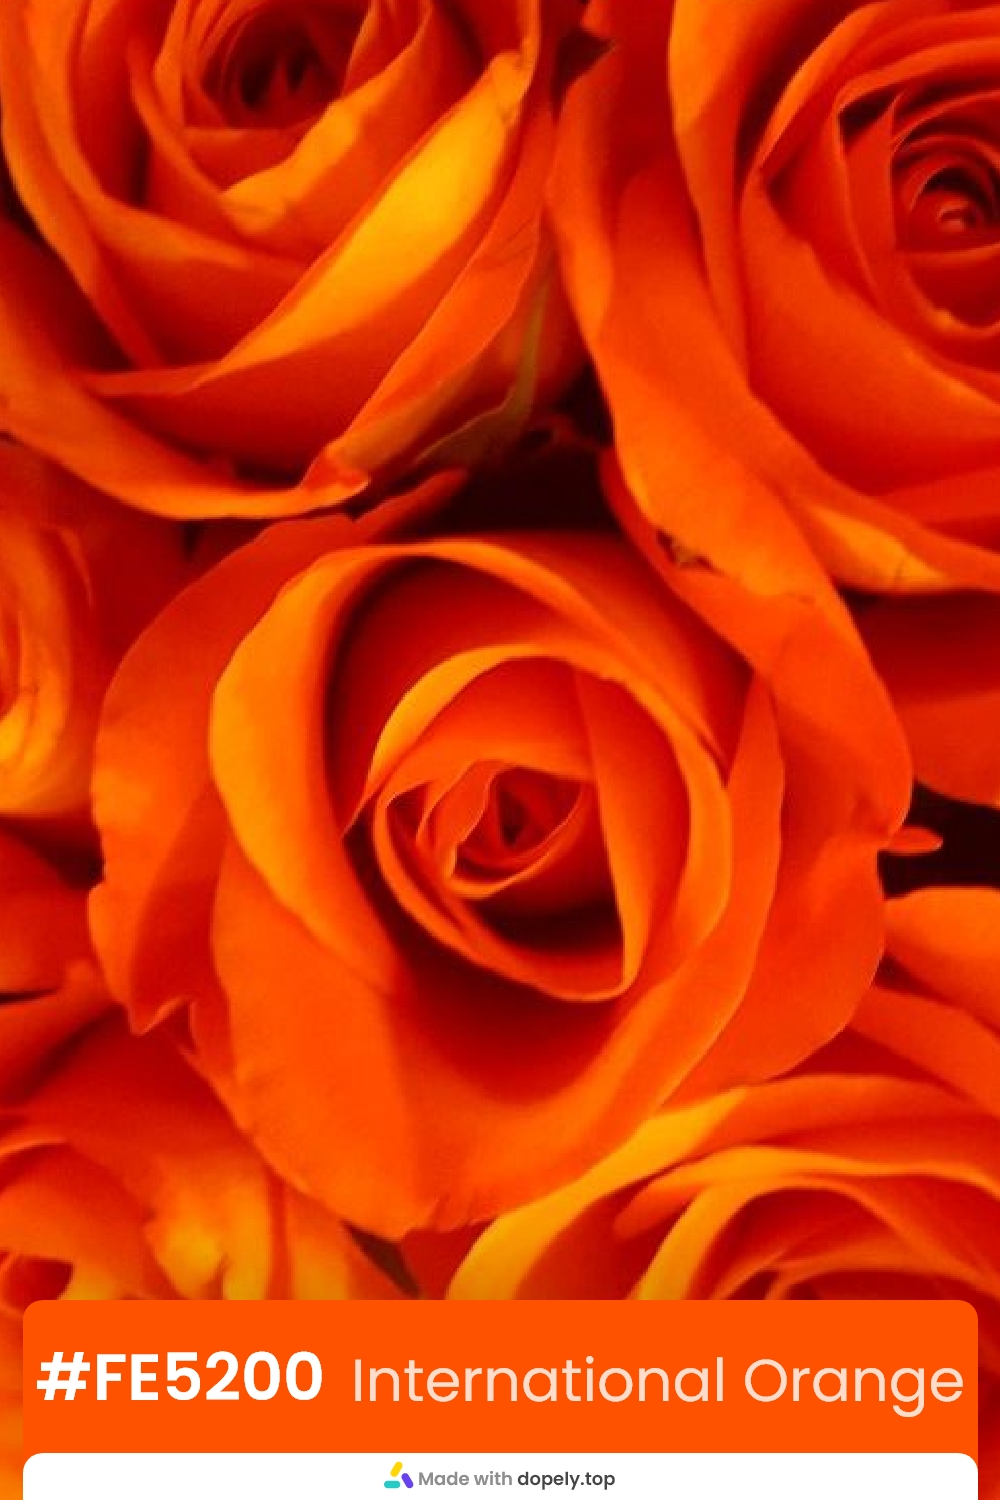 orange color rose flower meaning with hex code